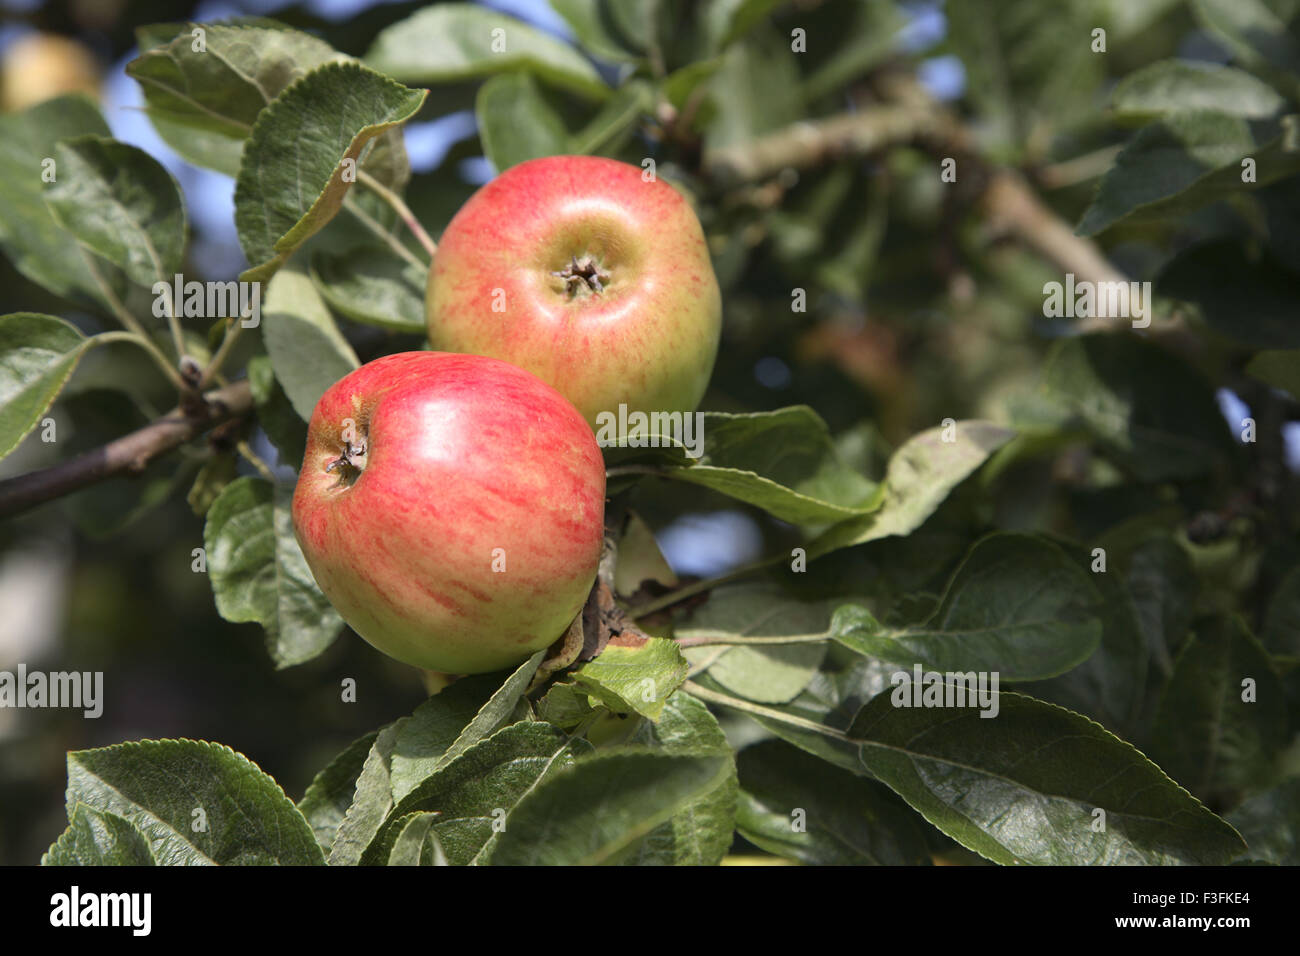 Fruits ; two red apples with green leaves - Stock Image